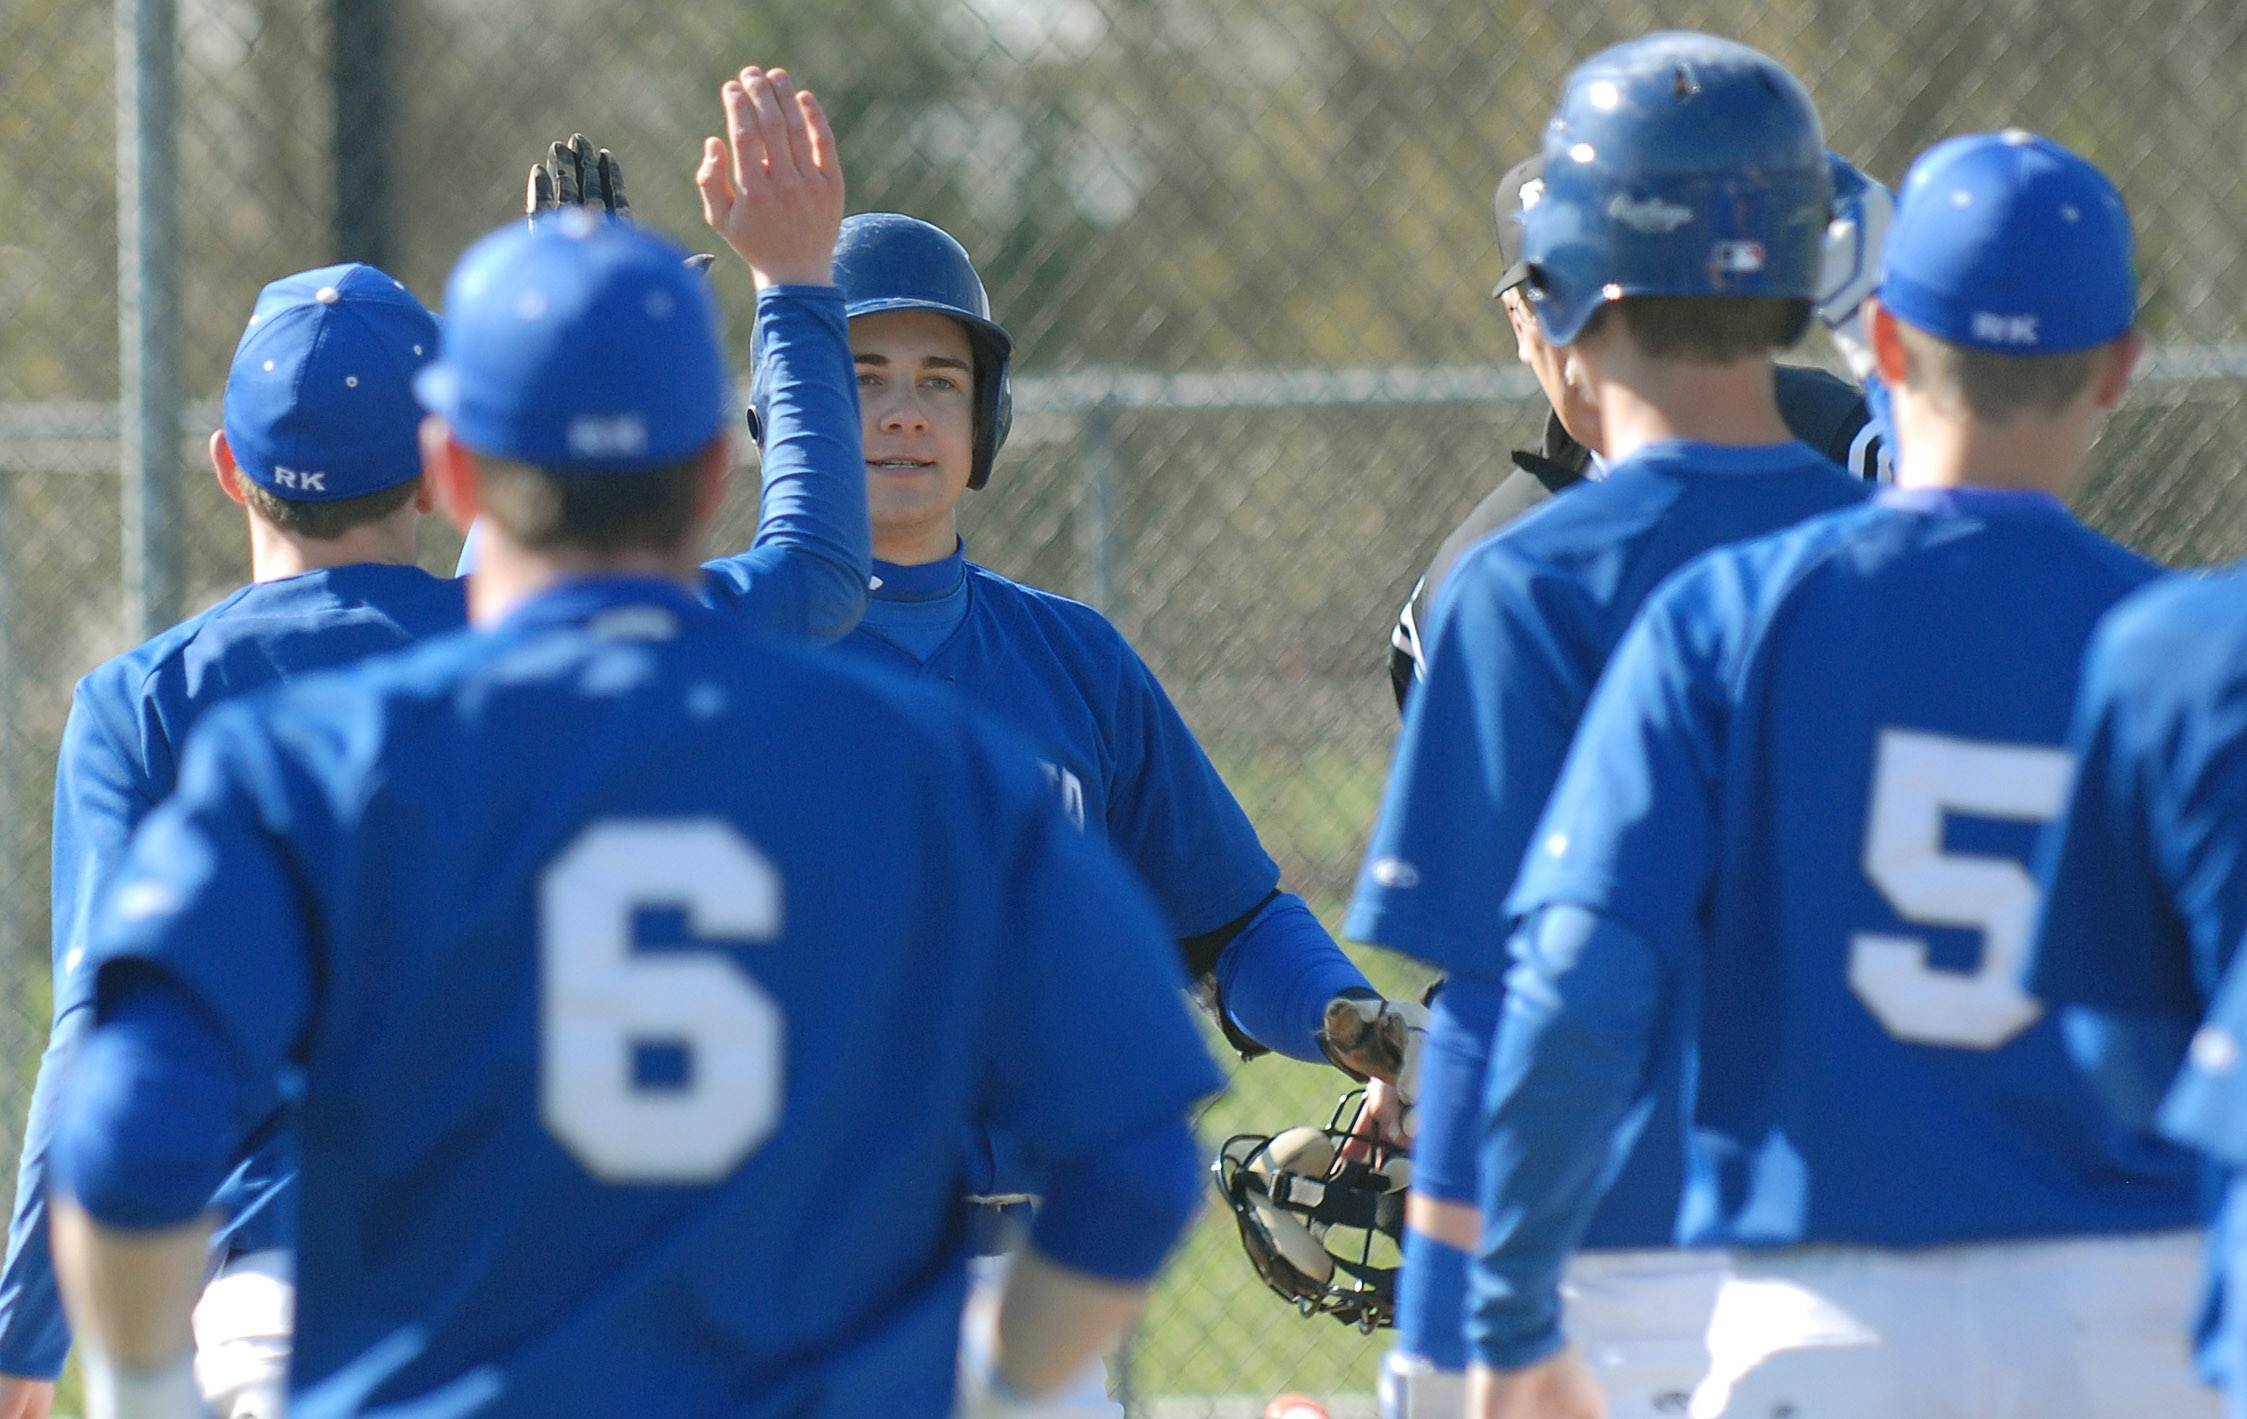 Geneva's Nick Derr (center, facing) is congratulated by teammates after scoring a home run in the first inning vs. St. Charles East on Saturday, May 3.